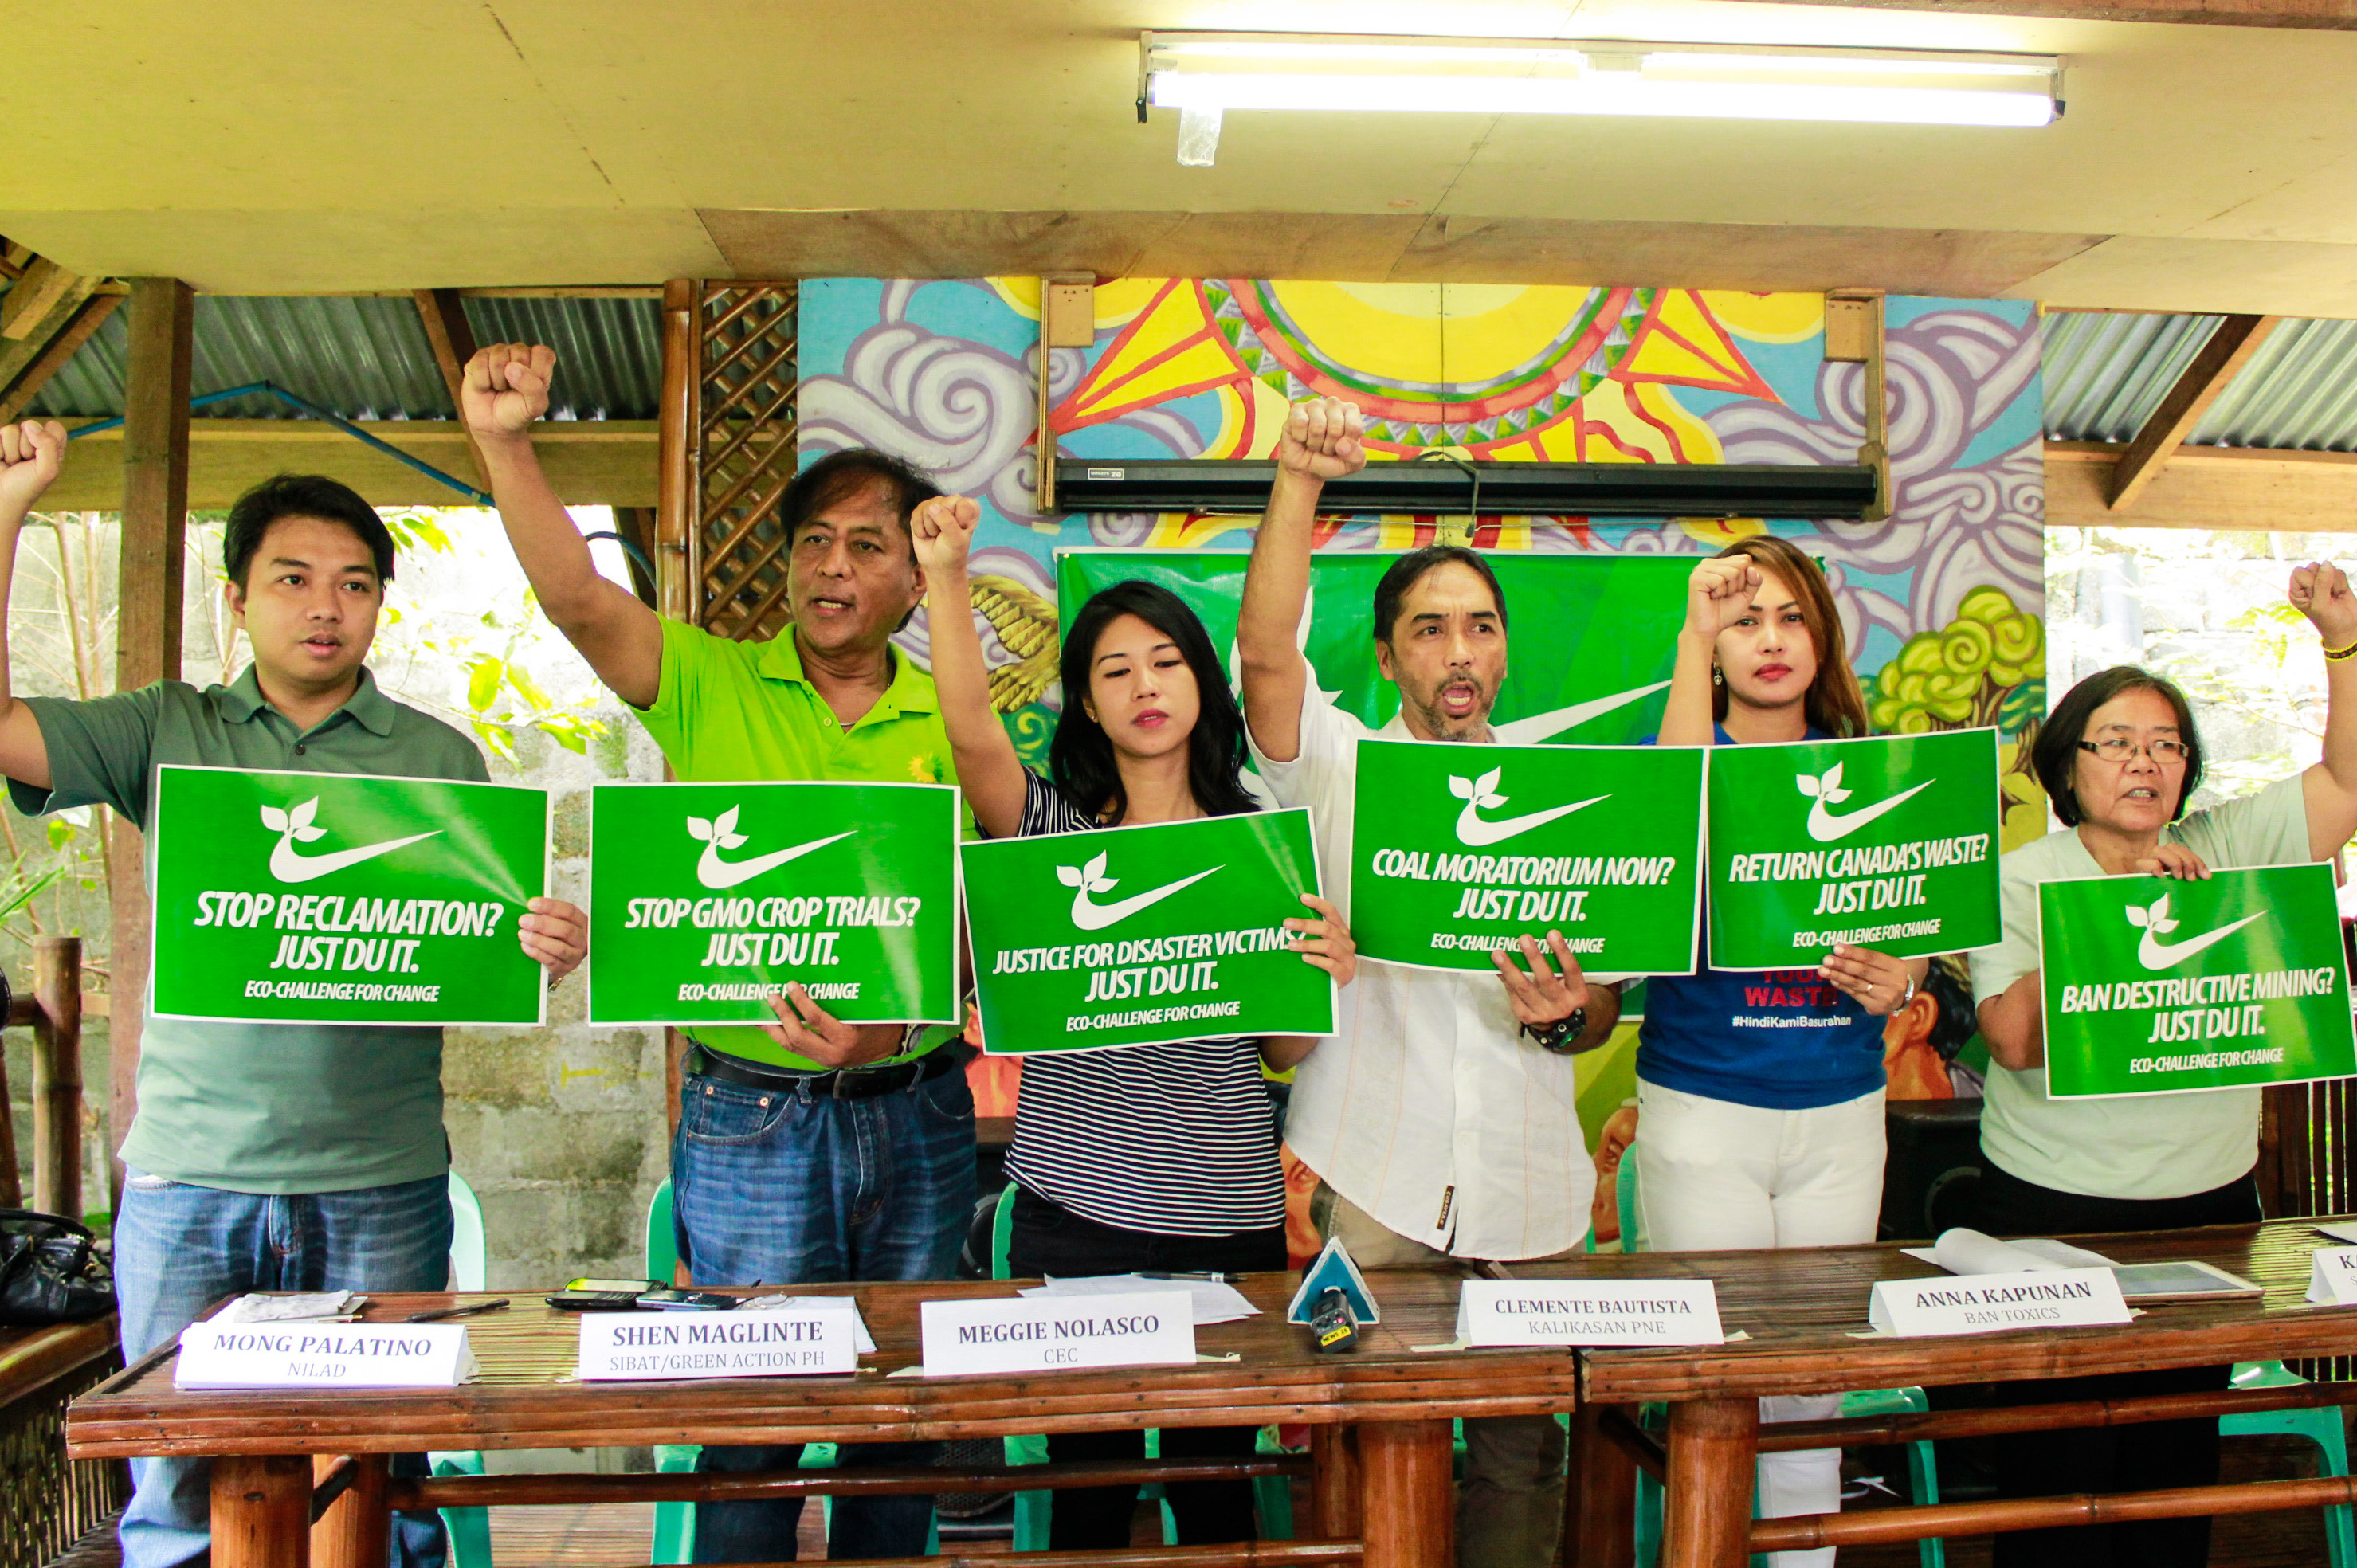 L to R: Mong Palatino of Bayan-NCR/Nilad, Shen Maglinte of Sibat/Green Action Ph, Meggie Nolasco of CEC, Clemente Bautista of Kalikasan-PNE, Anna Kapunan of BAN Toxics, and Kakay Tolentino of BAI/Scrap the Mining Act Alliance (Photo by K.A.Macalalad/Bulatlat)